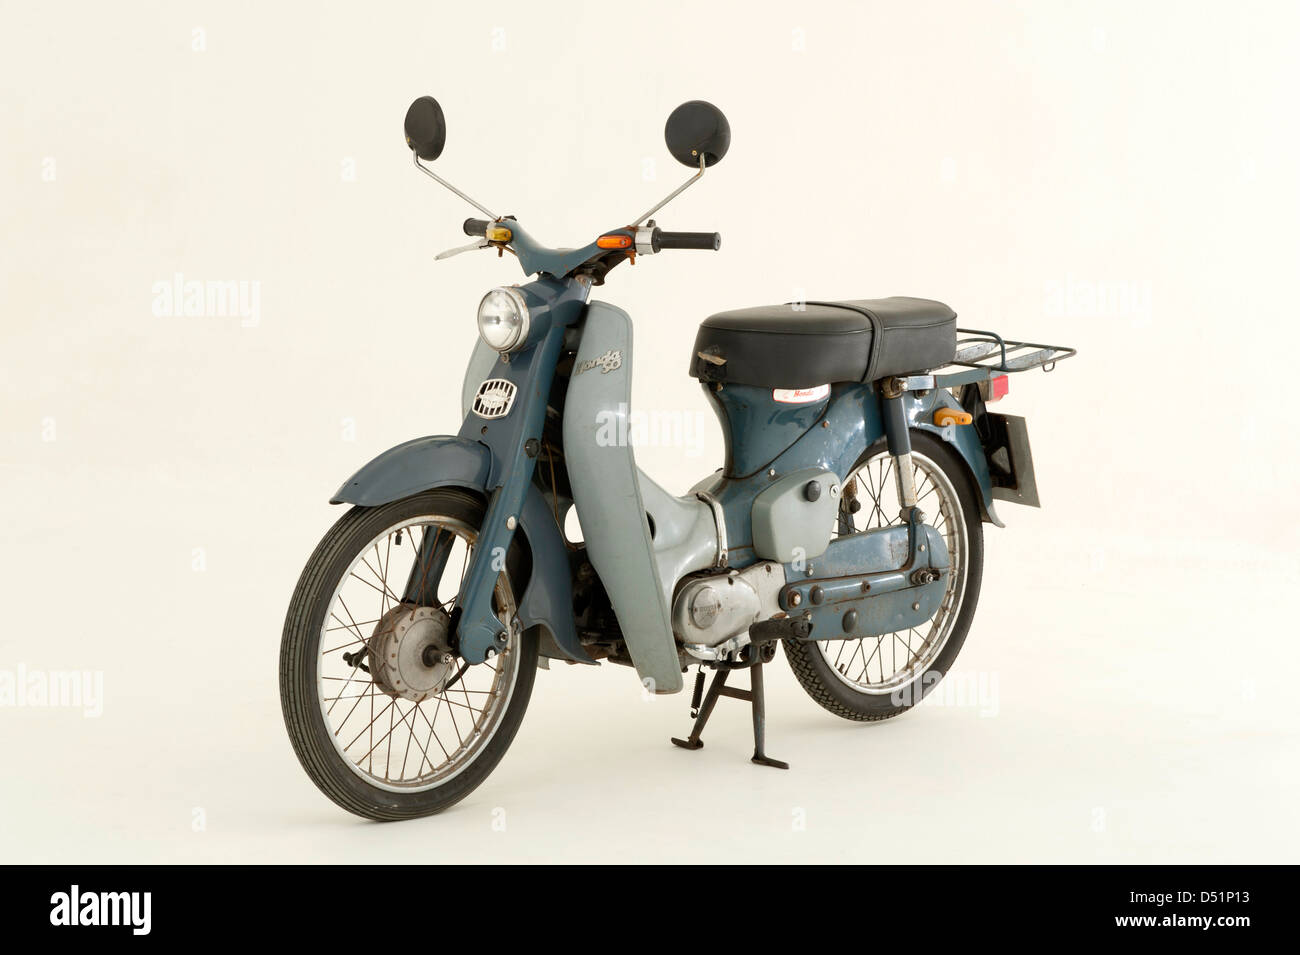 Japanese Scooter High Resolution Stock Photography And Images Alamy